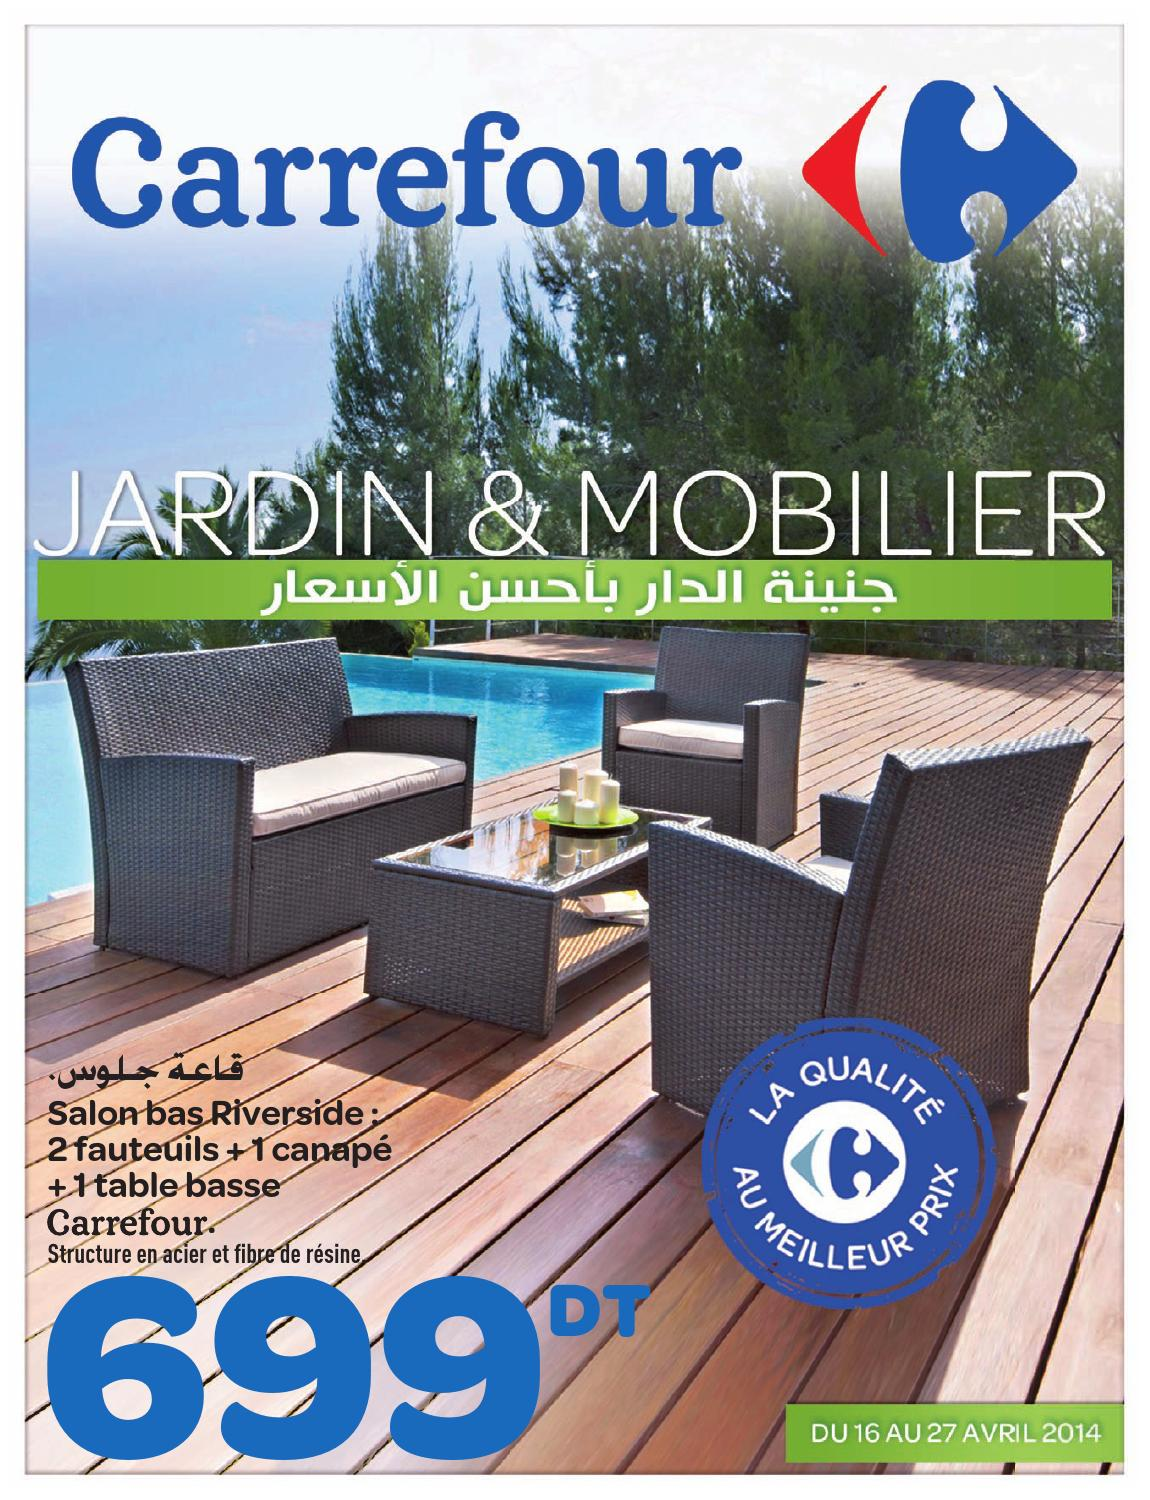 Catalogue carrefour jardin et mobilier by carrefour tunisie issuu - Carrefour maison de jardin ...